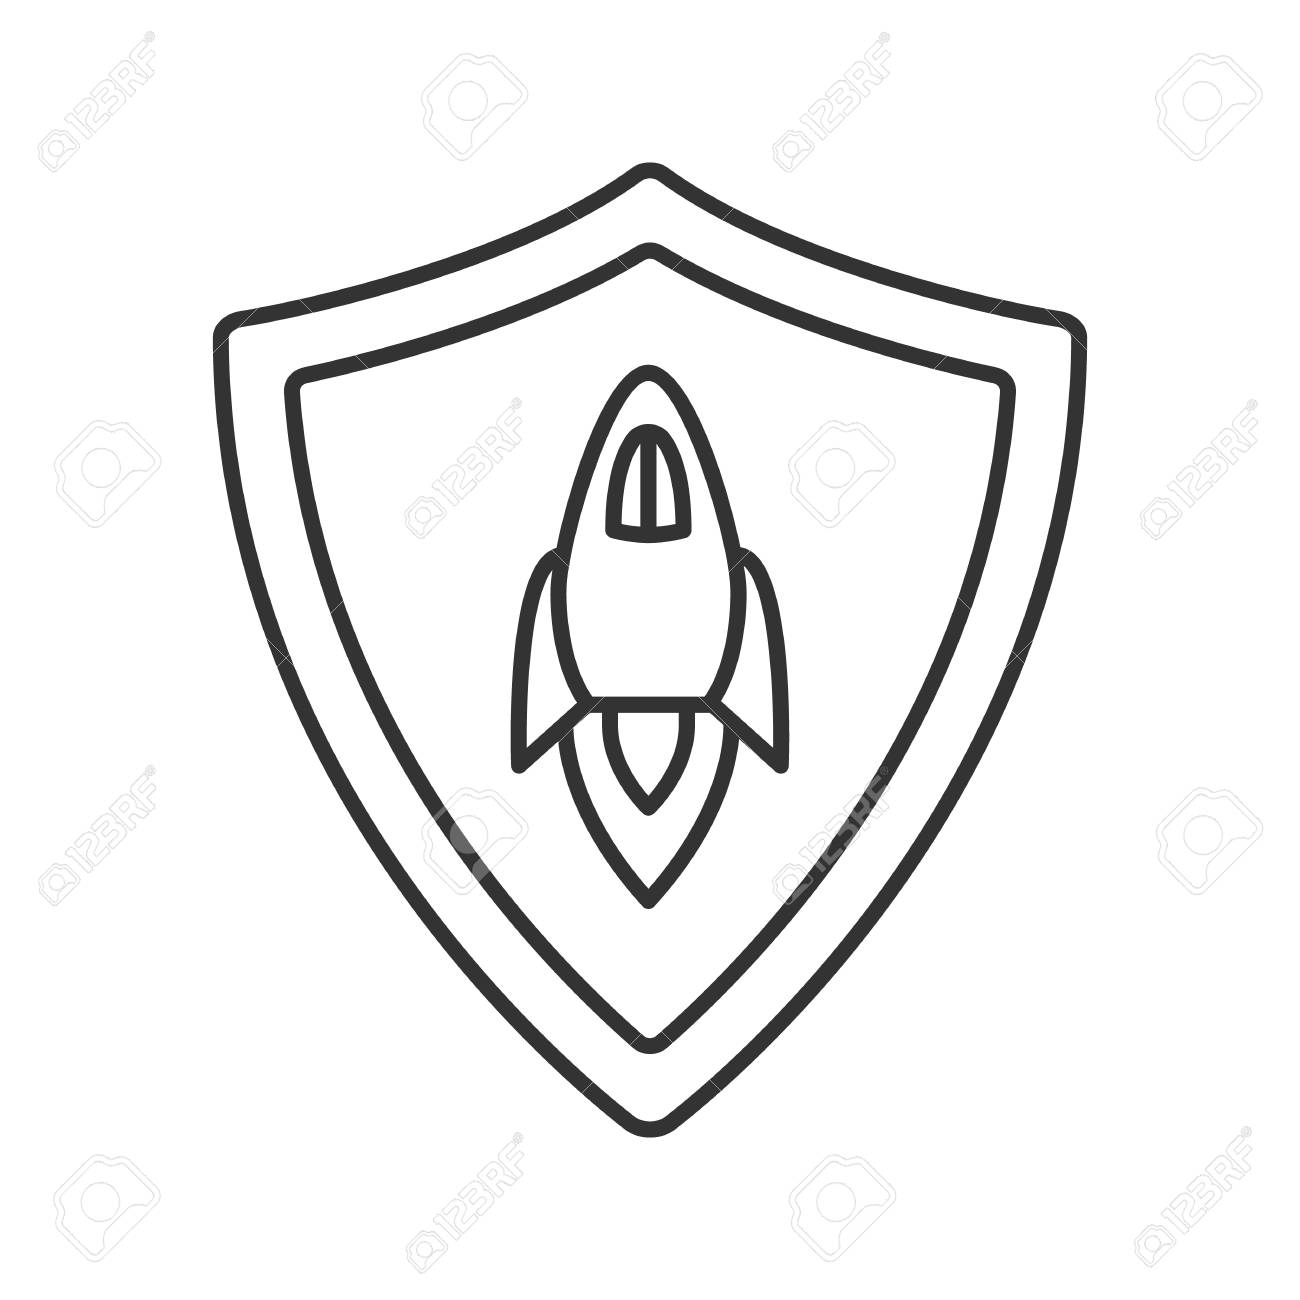 1300x1300 Startup Projects Protection Linear Icon. Thin Line Illustration